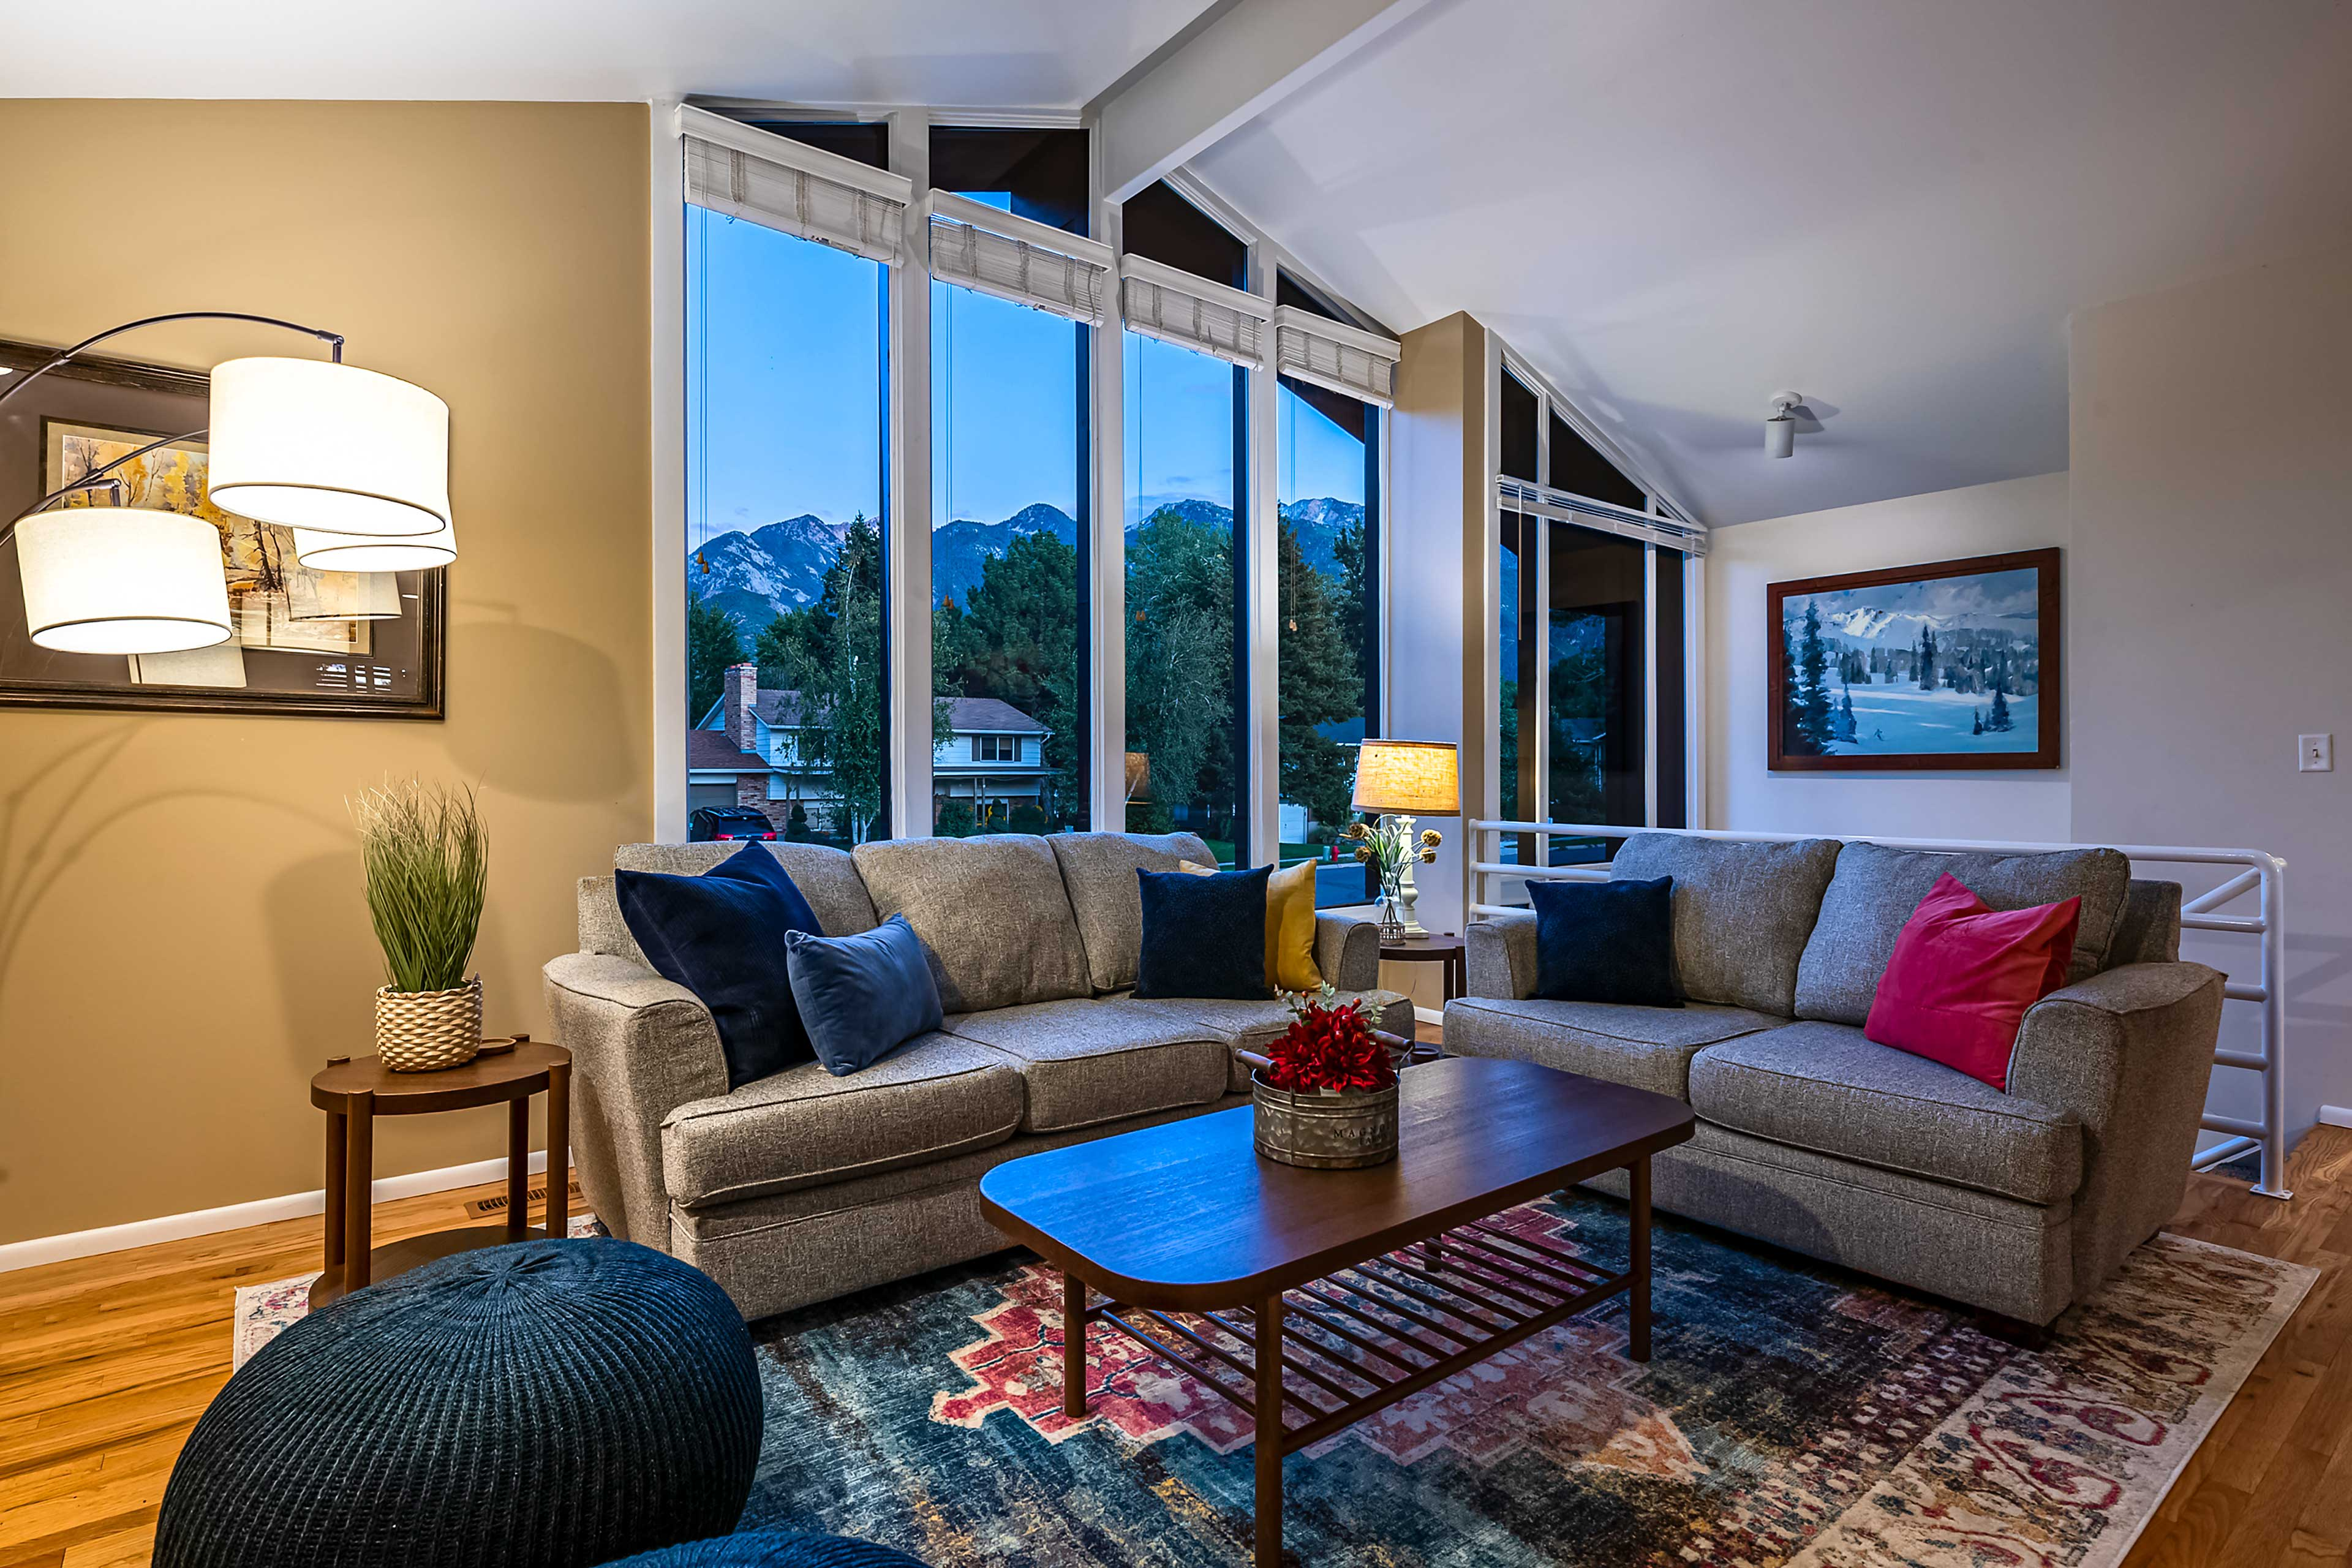 Live like the locals and see the mountains from your window in Sandy.